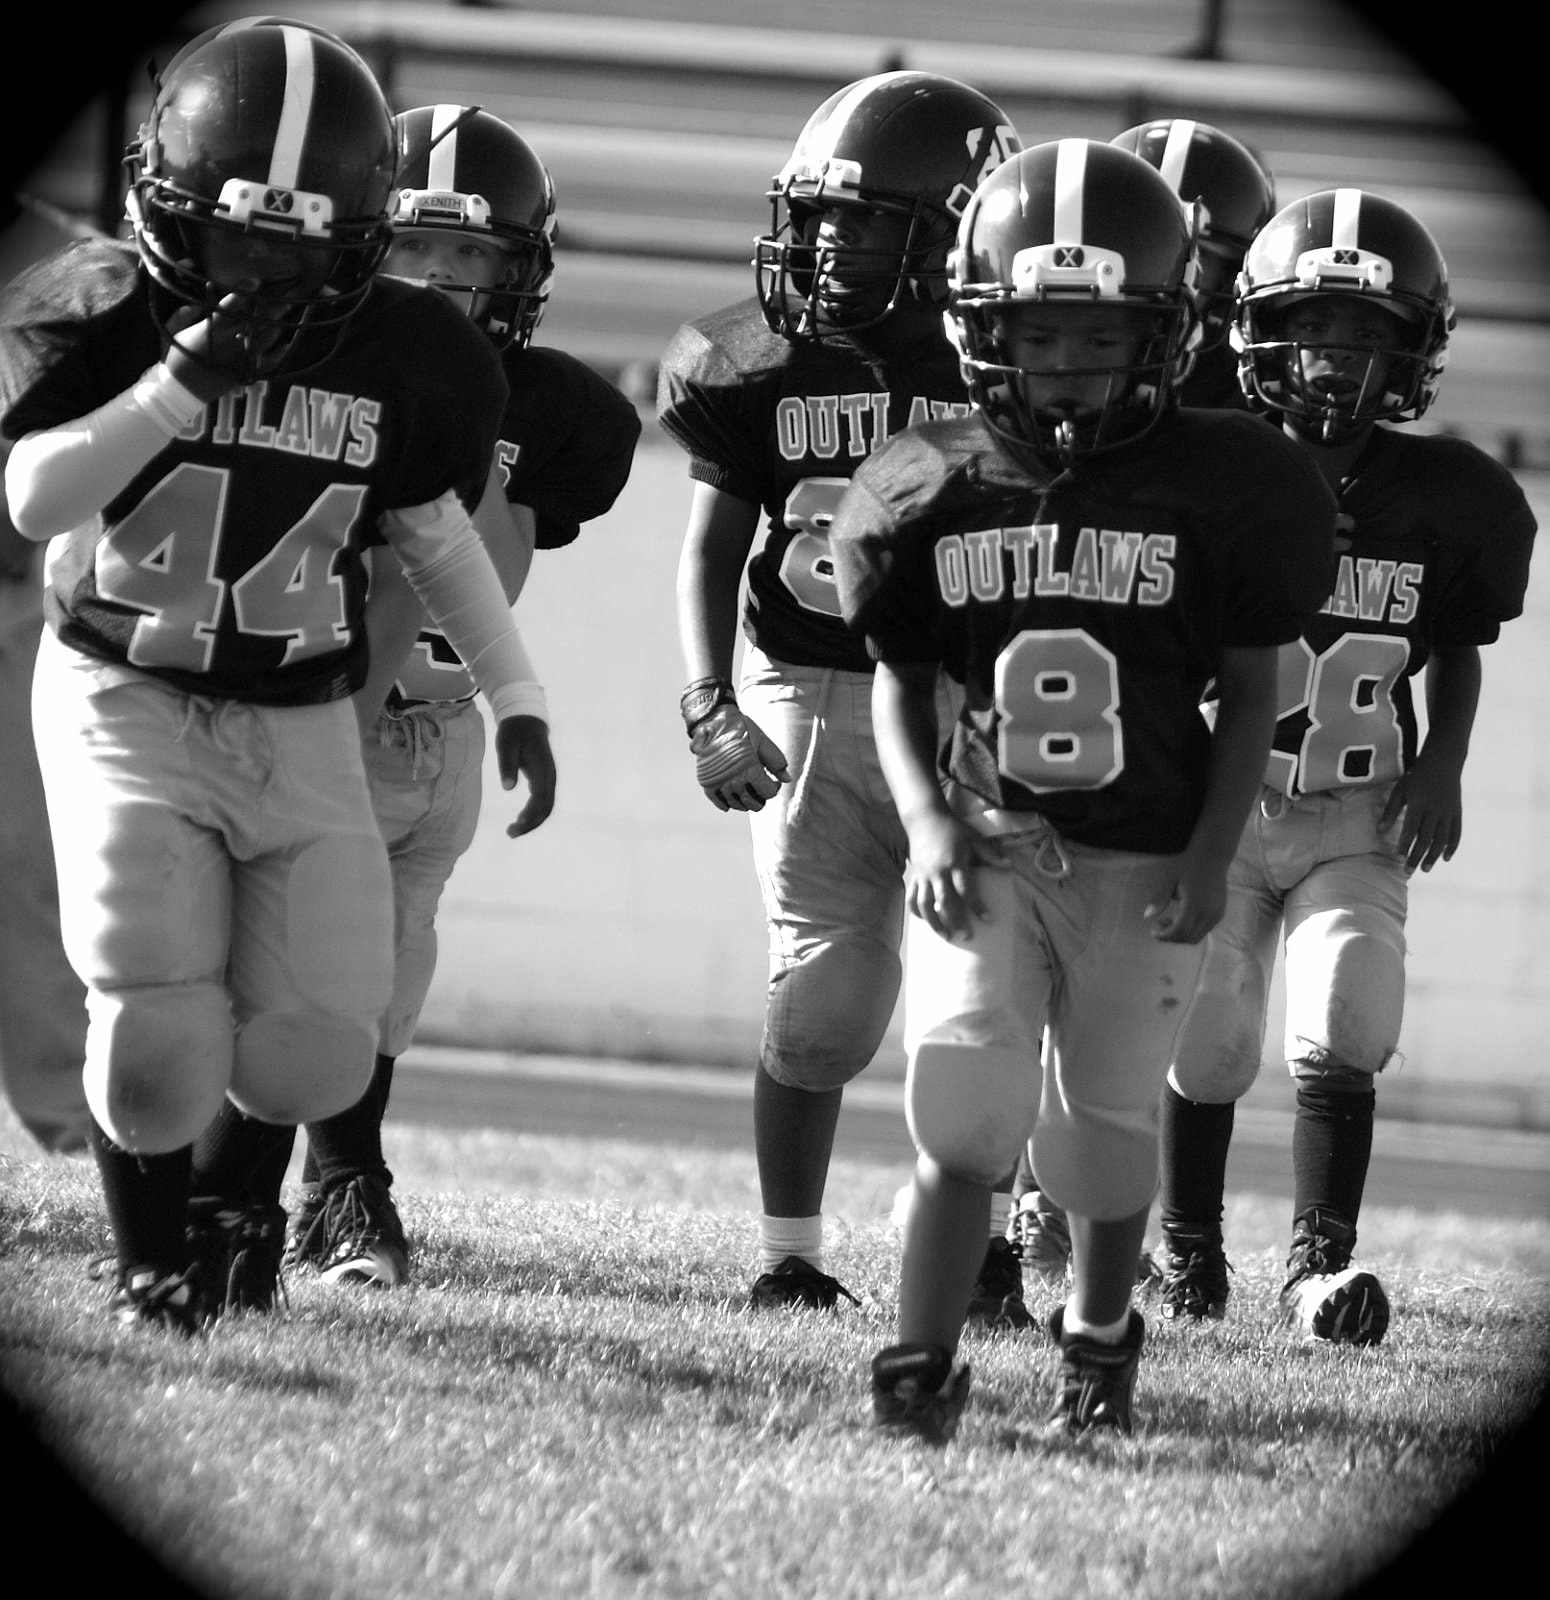 West Chester Outlaws - 2nd grade